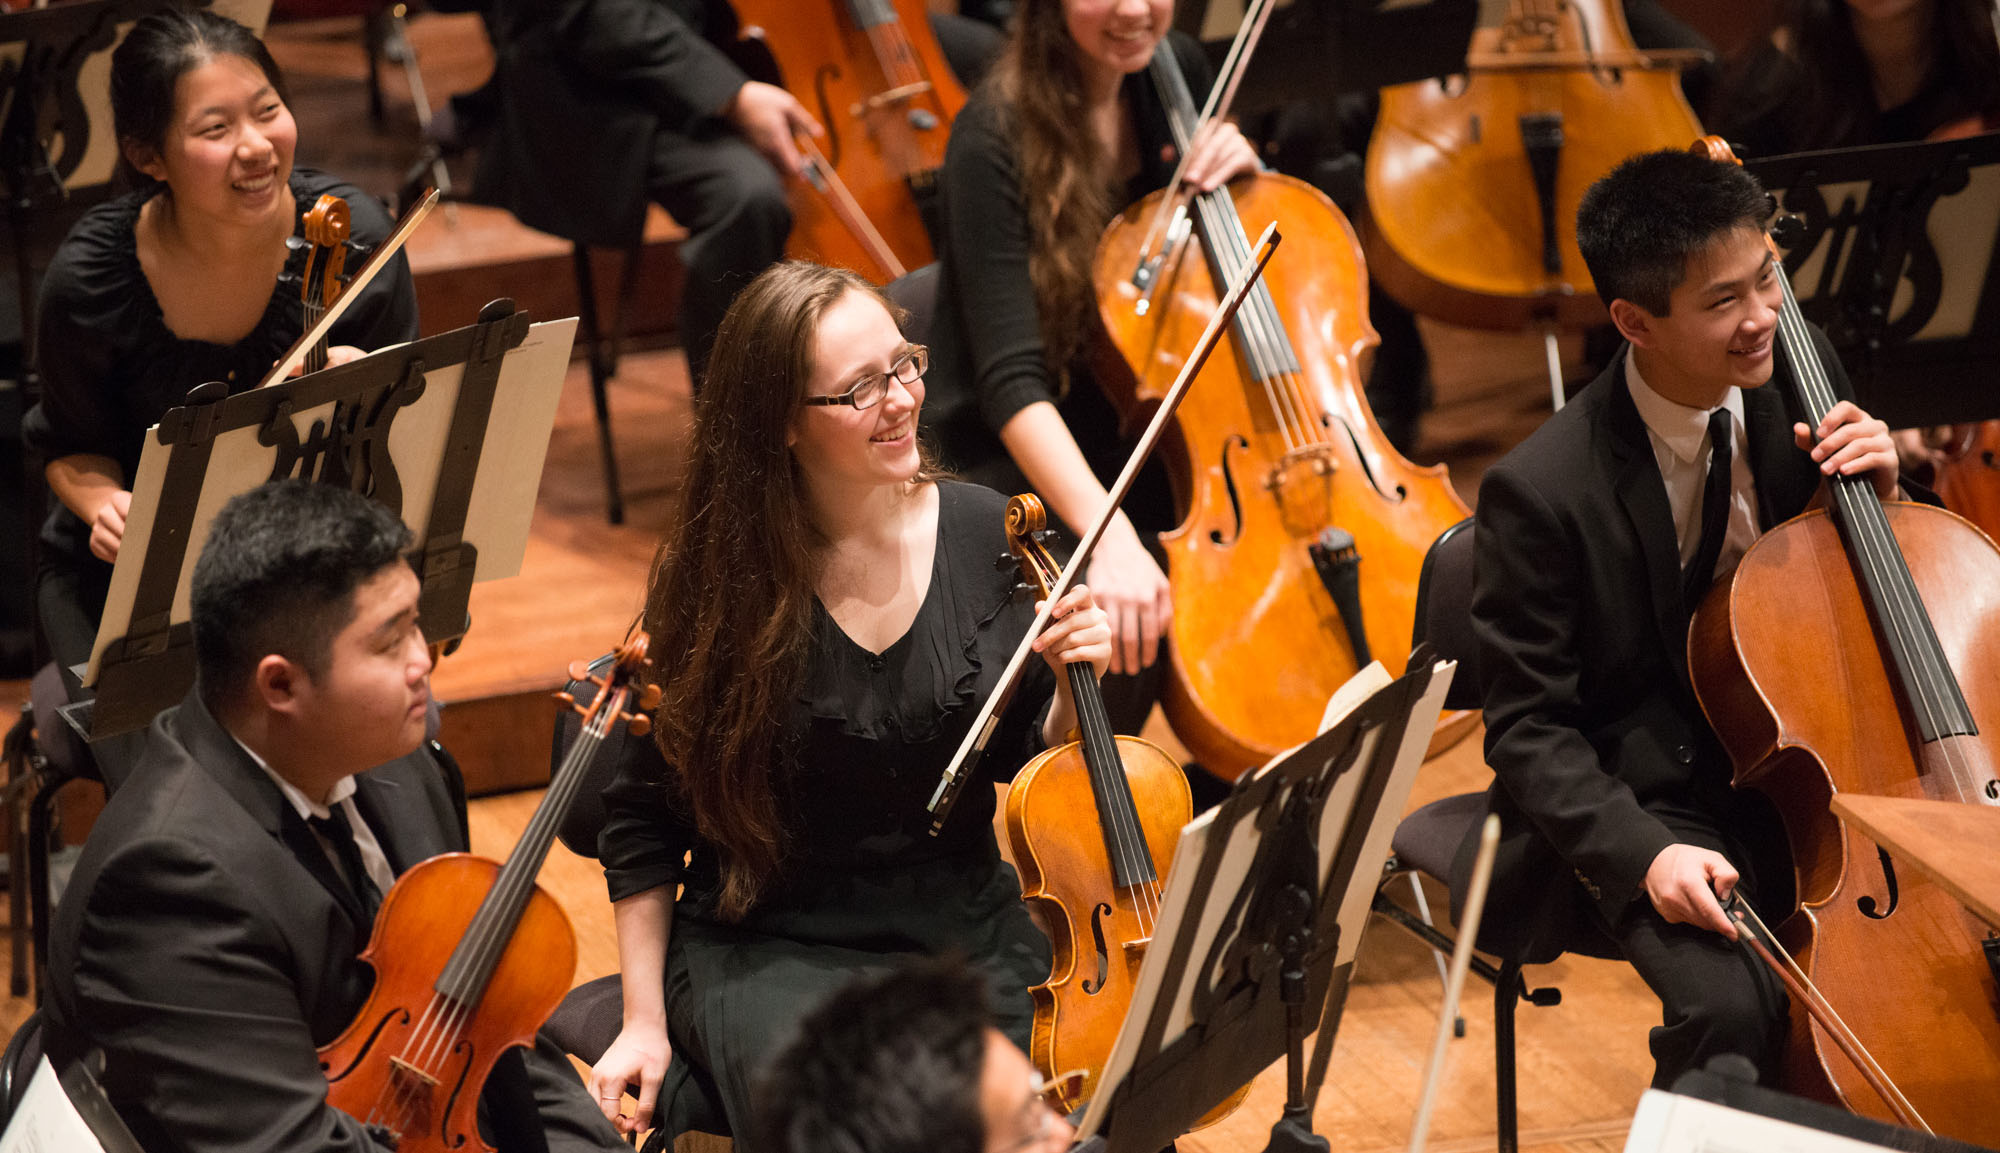 Youth Orchestra in rehearsal